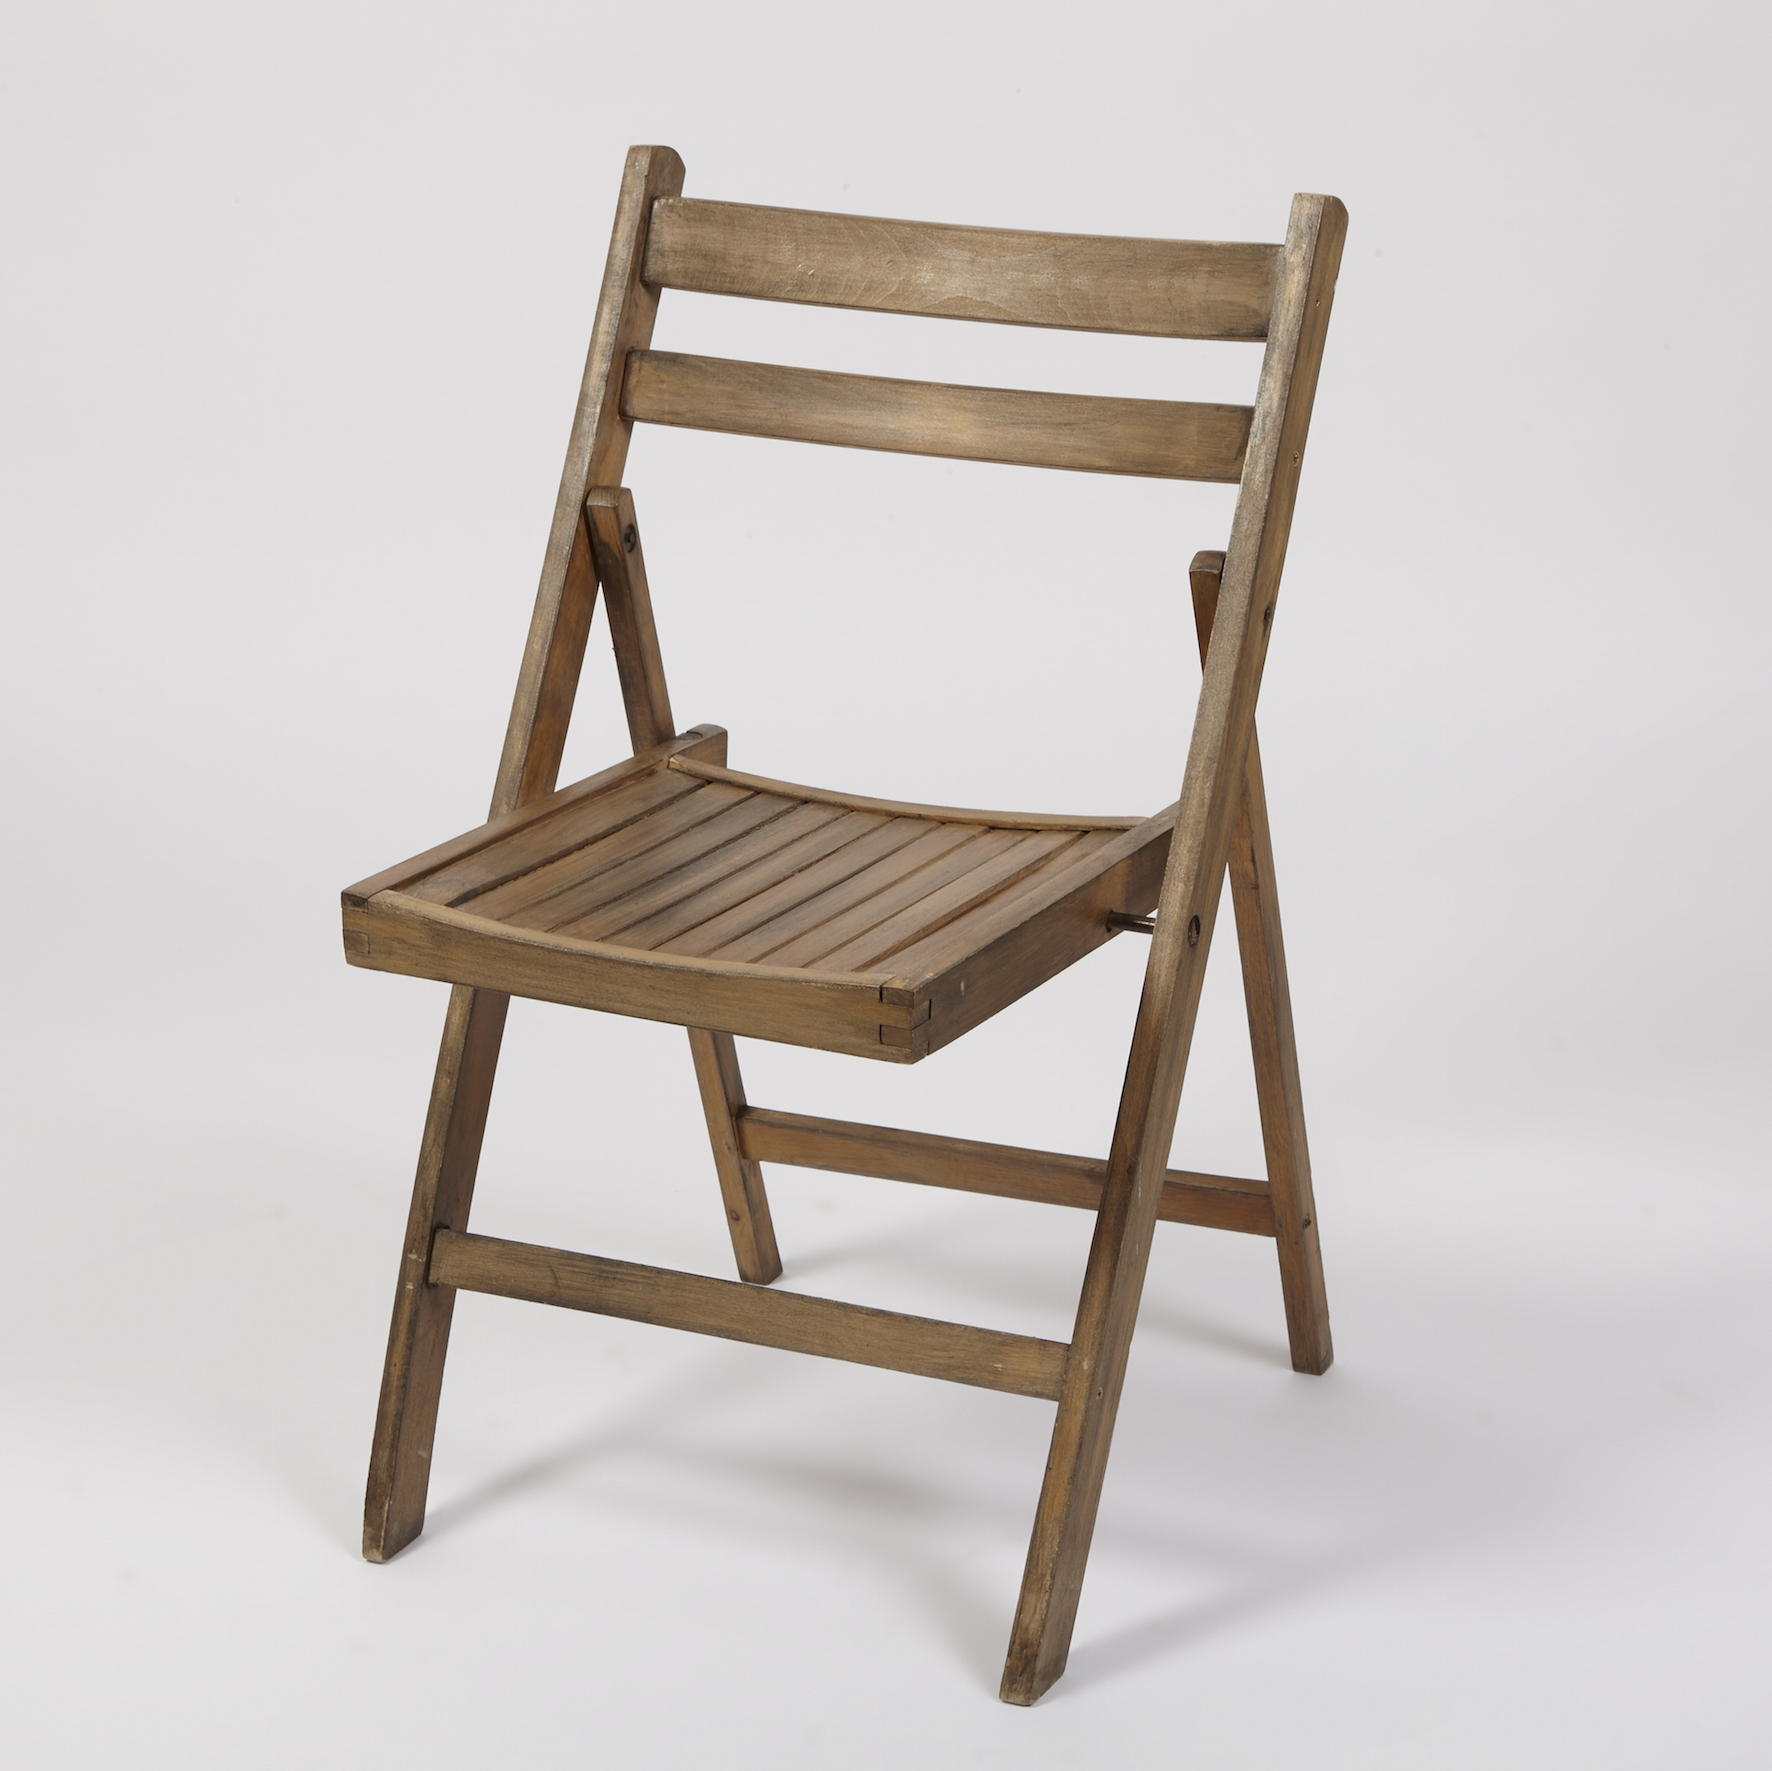 wooden folding chairs folding wooden dining chairs uk almirah beds wood folding dining chairs POROIBN